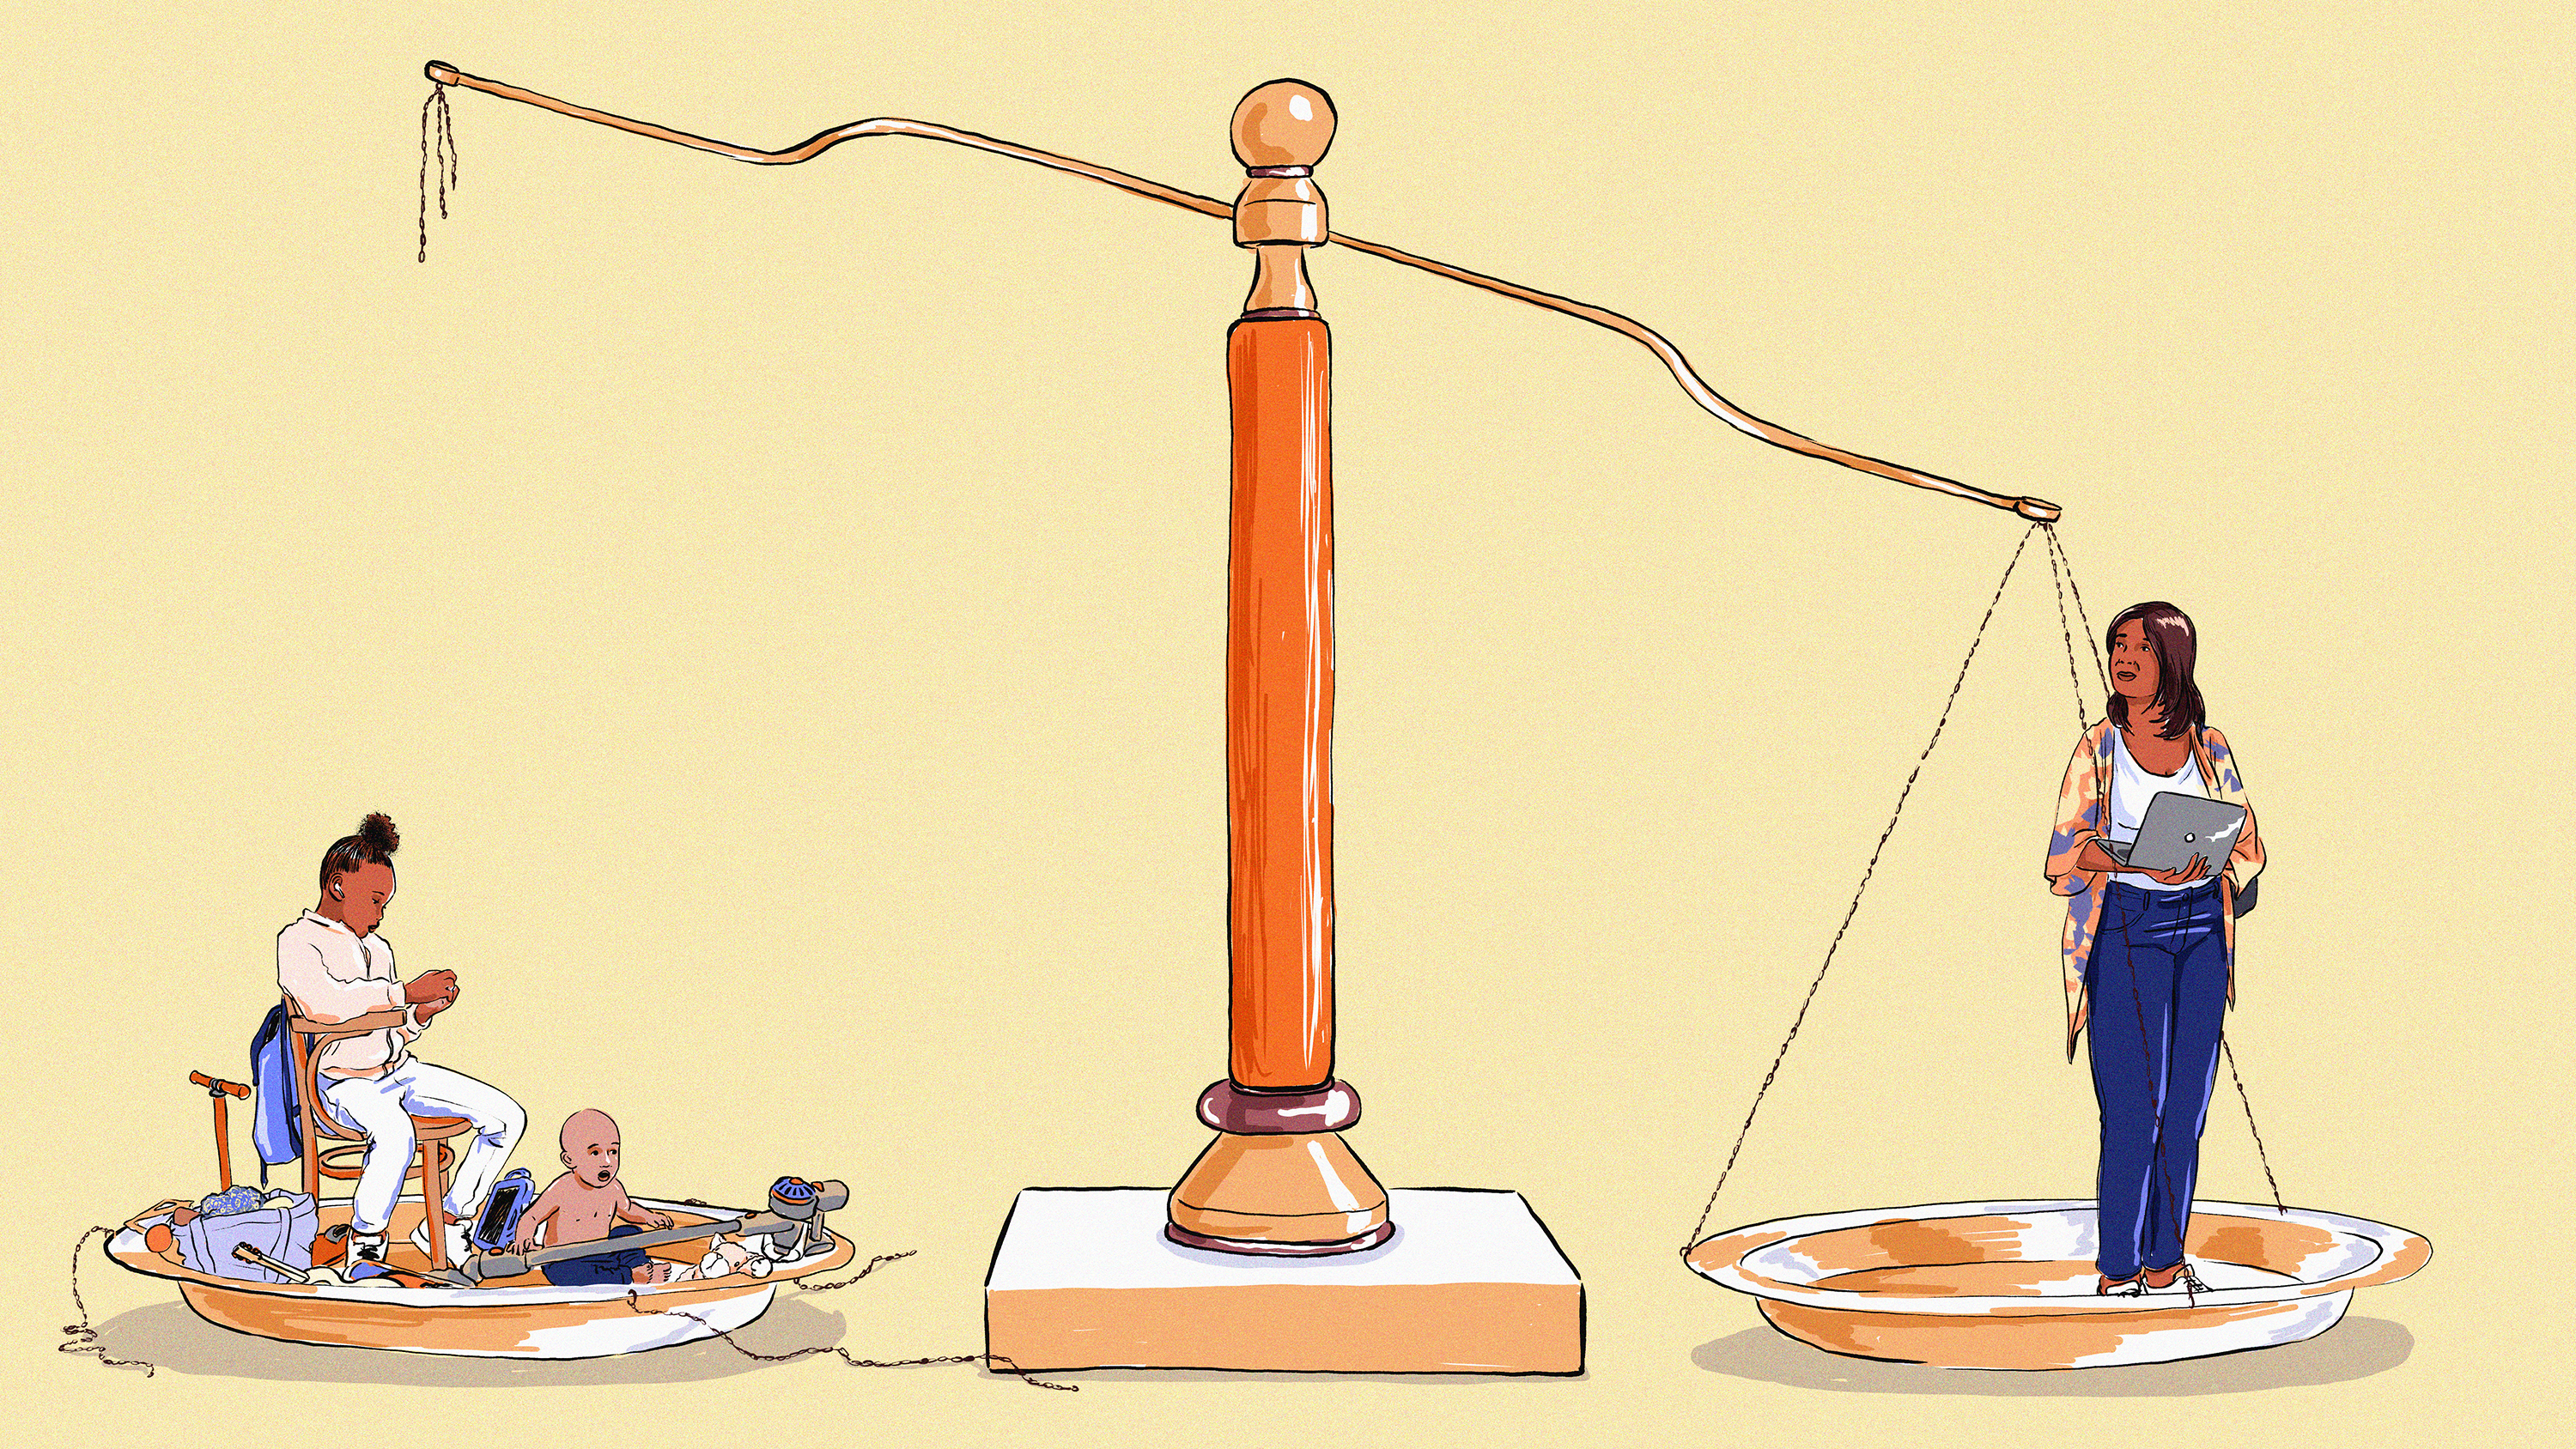 An illustration of a woman on a broken balancing scale, with one side representing motherhood and the other work.